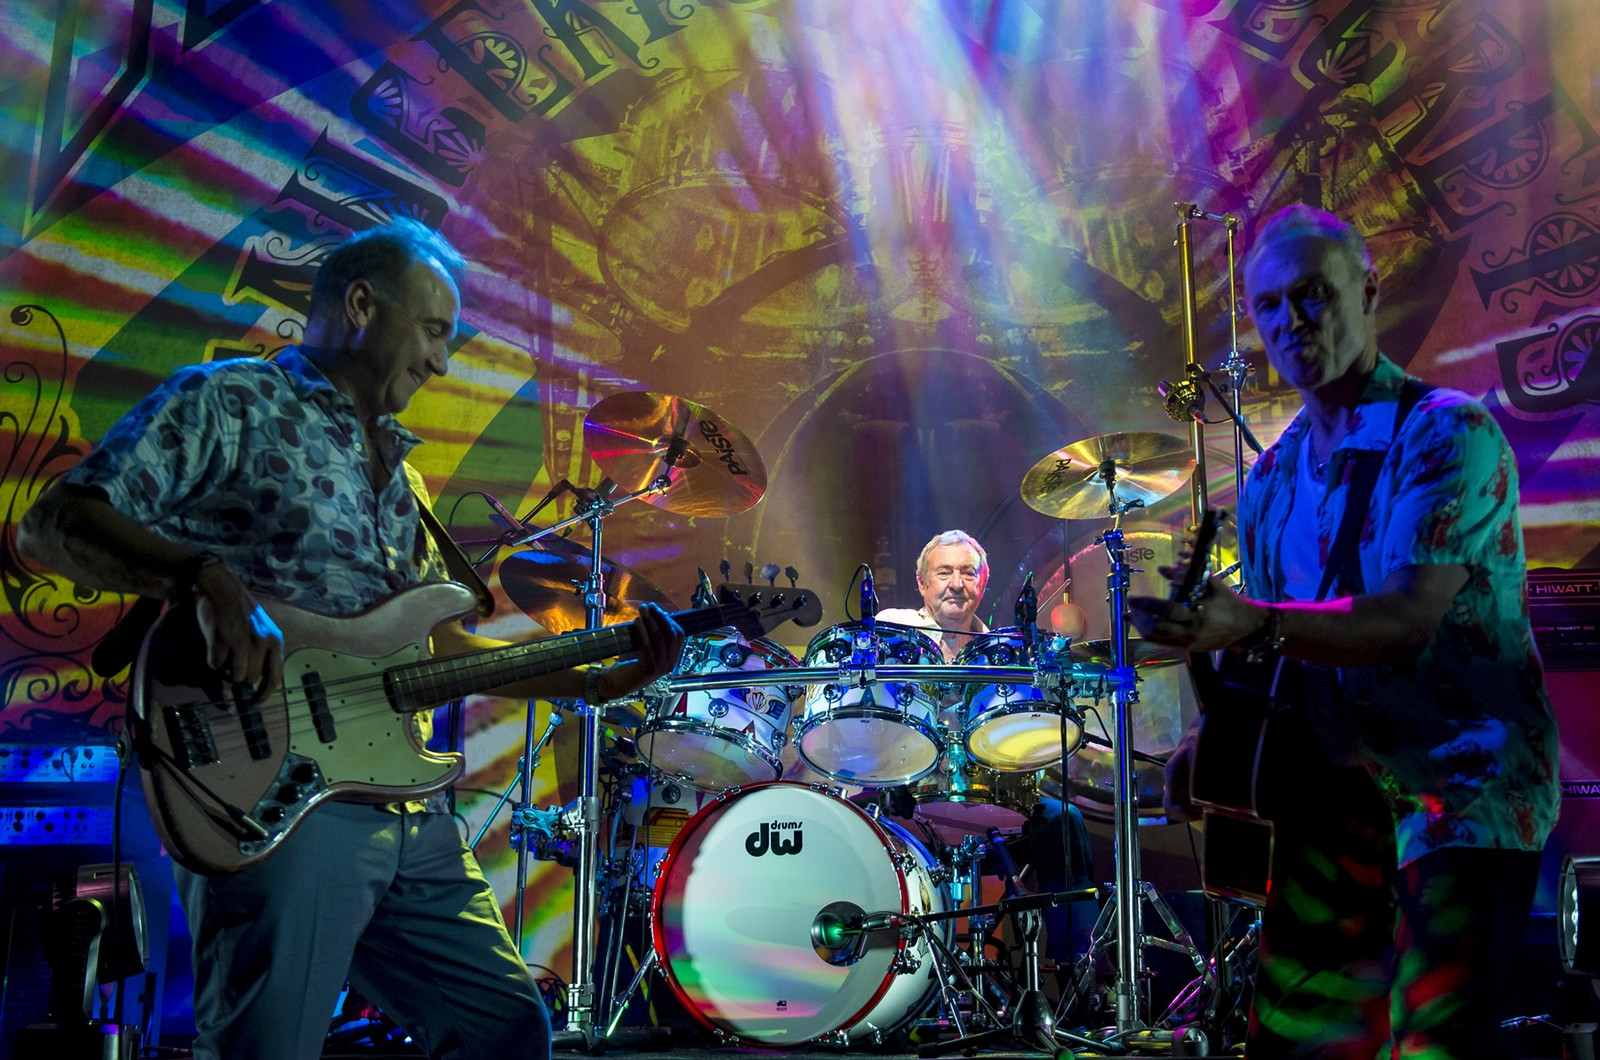 Guy Pratt, Nick Mason and Gary Kemp perform on stage with Nick Mason's Saucerful Of Secrets at The Roundhouse, London on Sept. 24, 2018